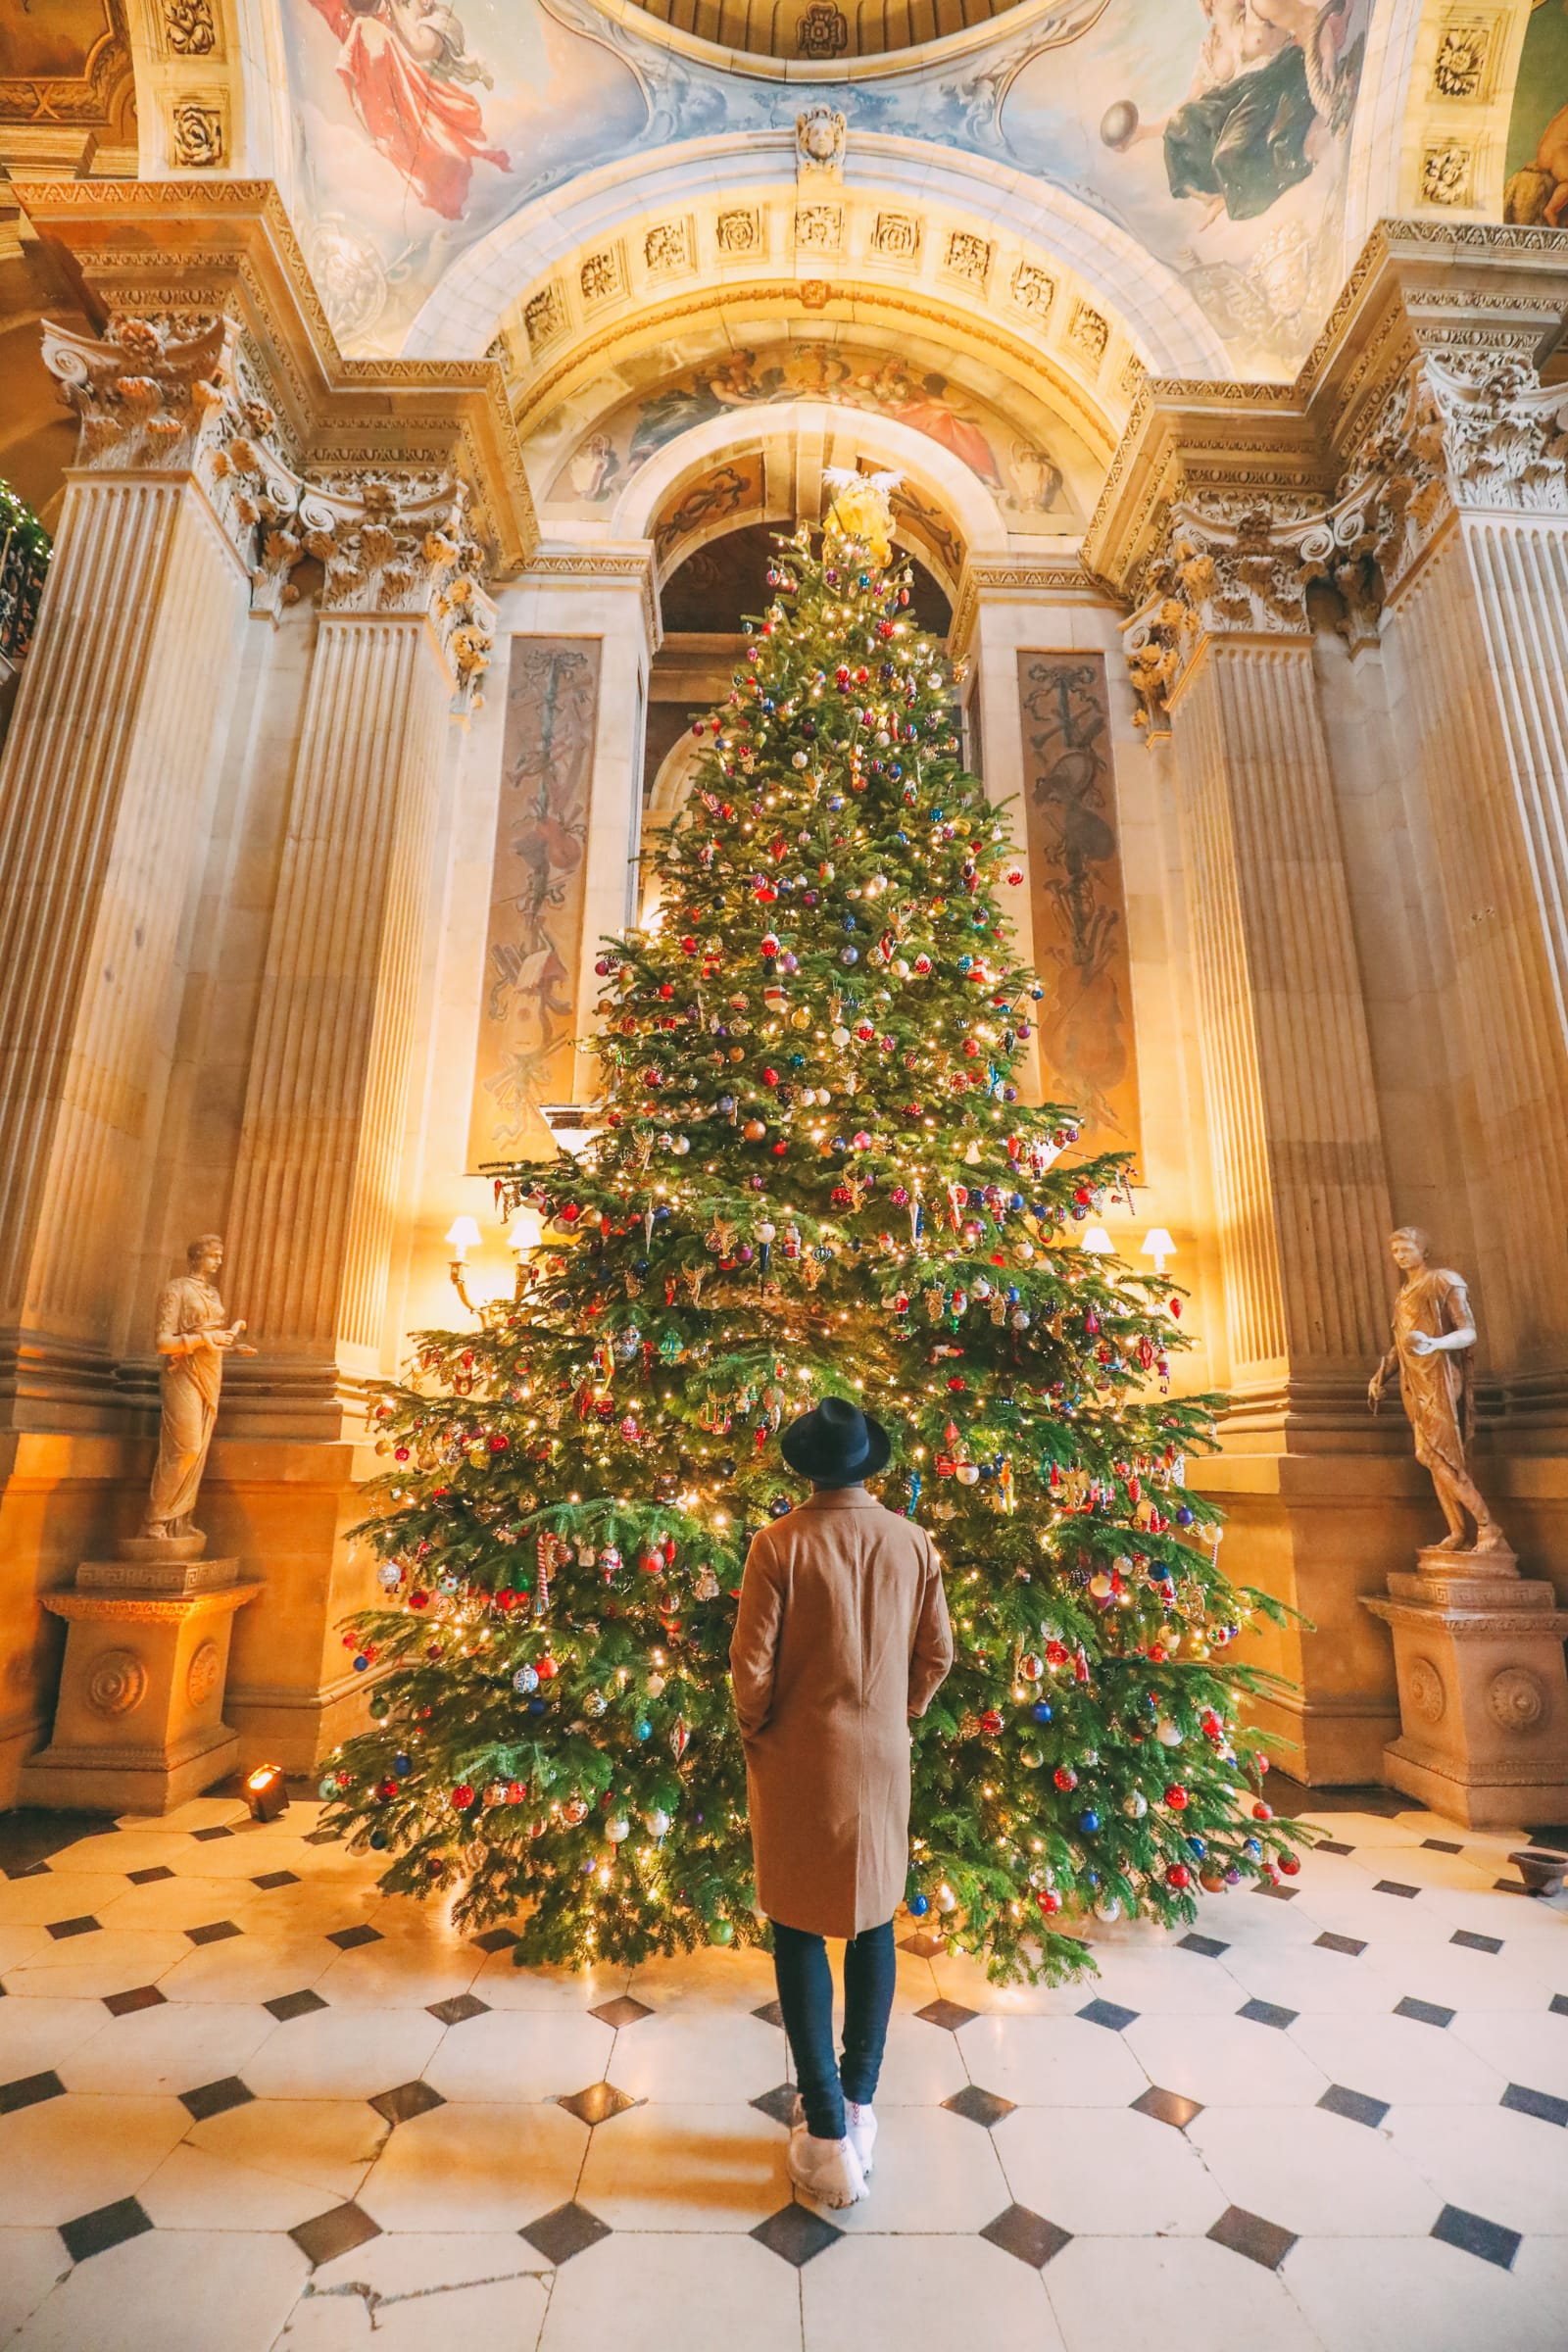 Castle Howard - An English Castle You Absolutely Have To Visit! (23)